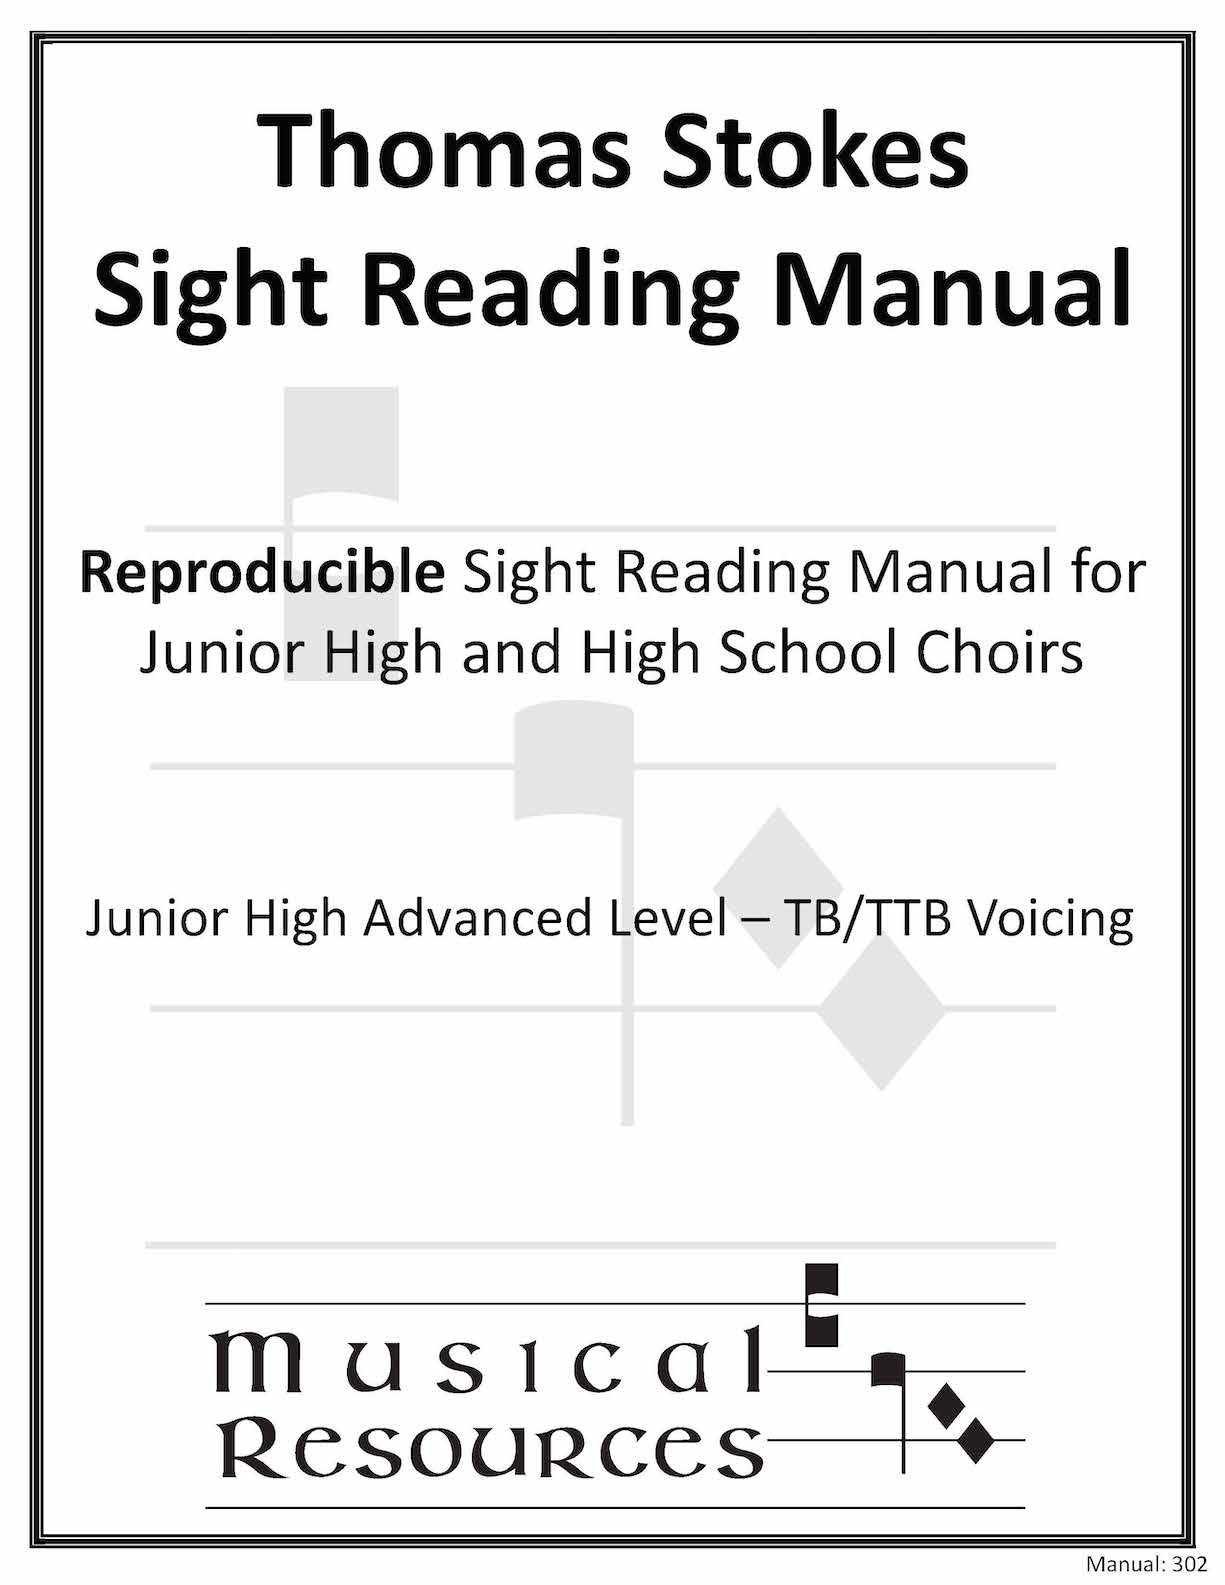 Picture of (Digital) Thomas Stokes Sightreading Manual #302 - TB/TTB Junior High Advanced